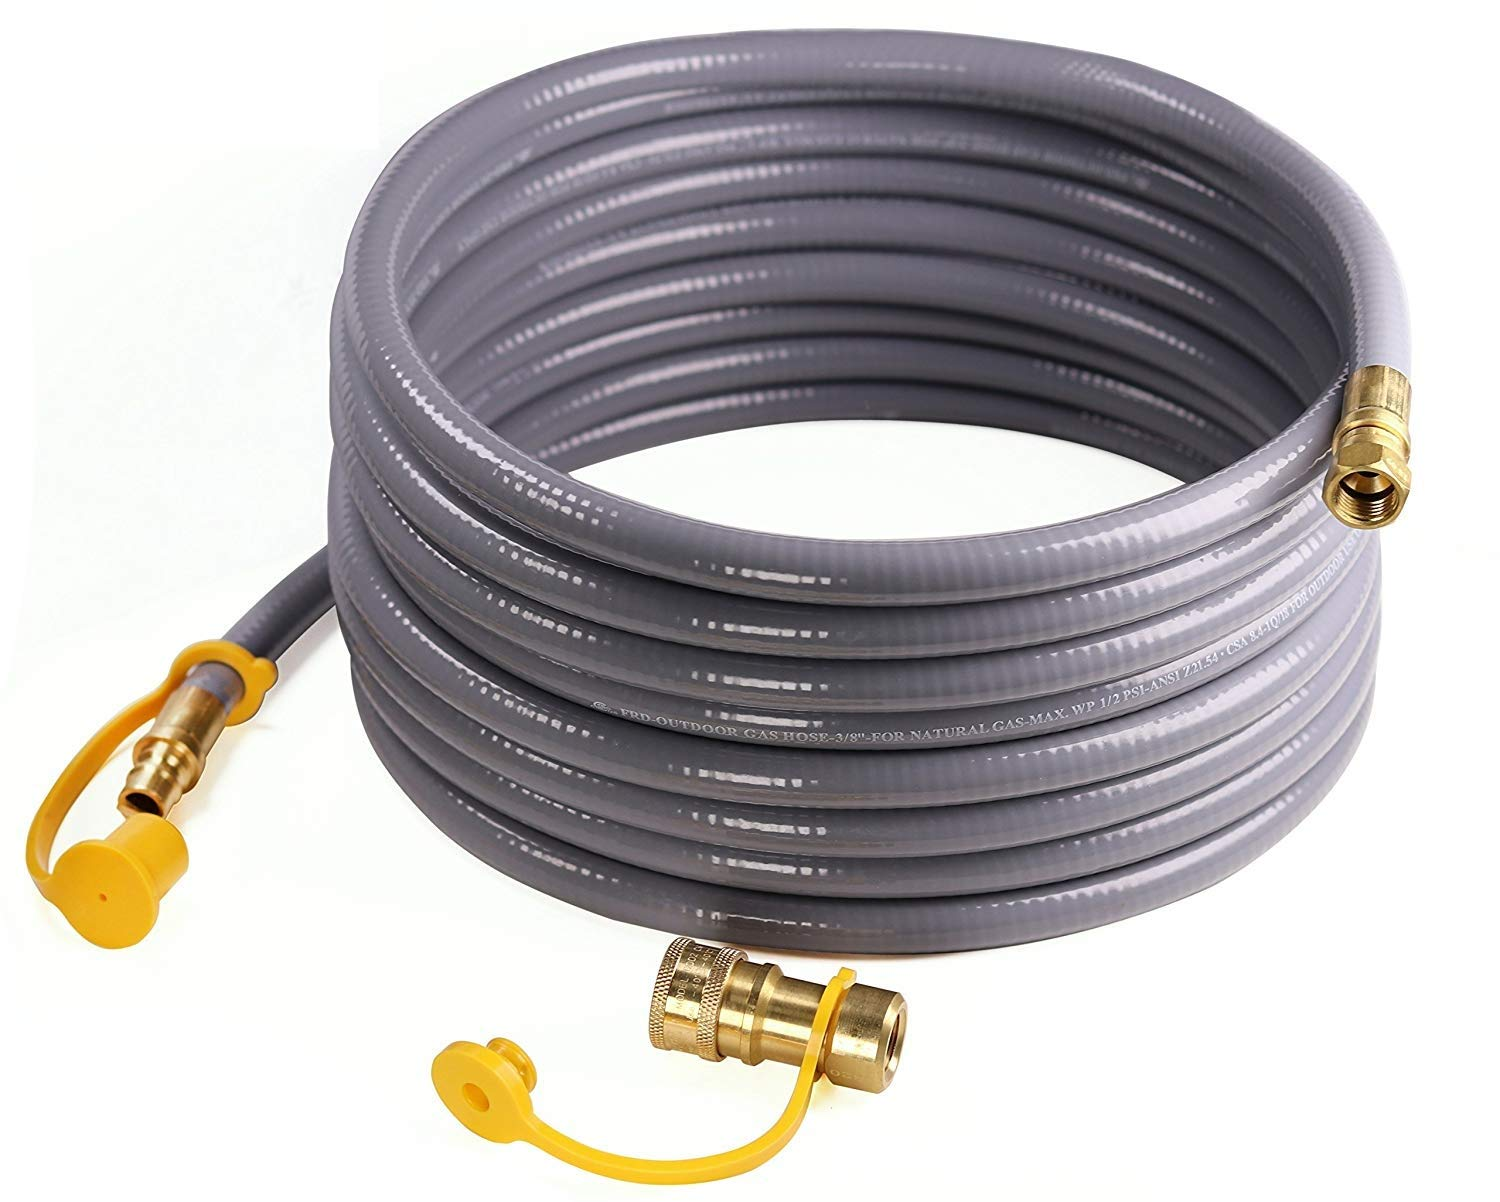 DOZYANT 24 Feet 3/8-inch ID Natural Gas Grill Hose with Quick Connect Propane Gas Hose Assembly for Low Pressure Appliance -3/8 Female Pipe Thread x 3/8 Male Flare Quick Disconnect - CSA Certified by DOZYANT